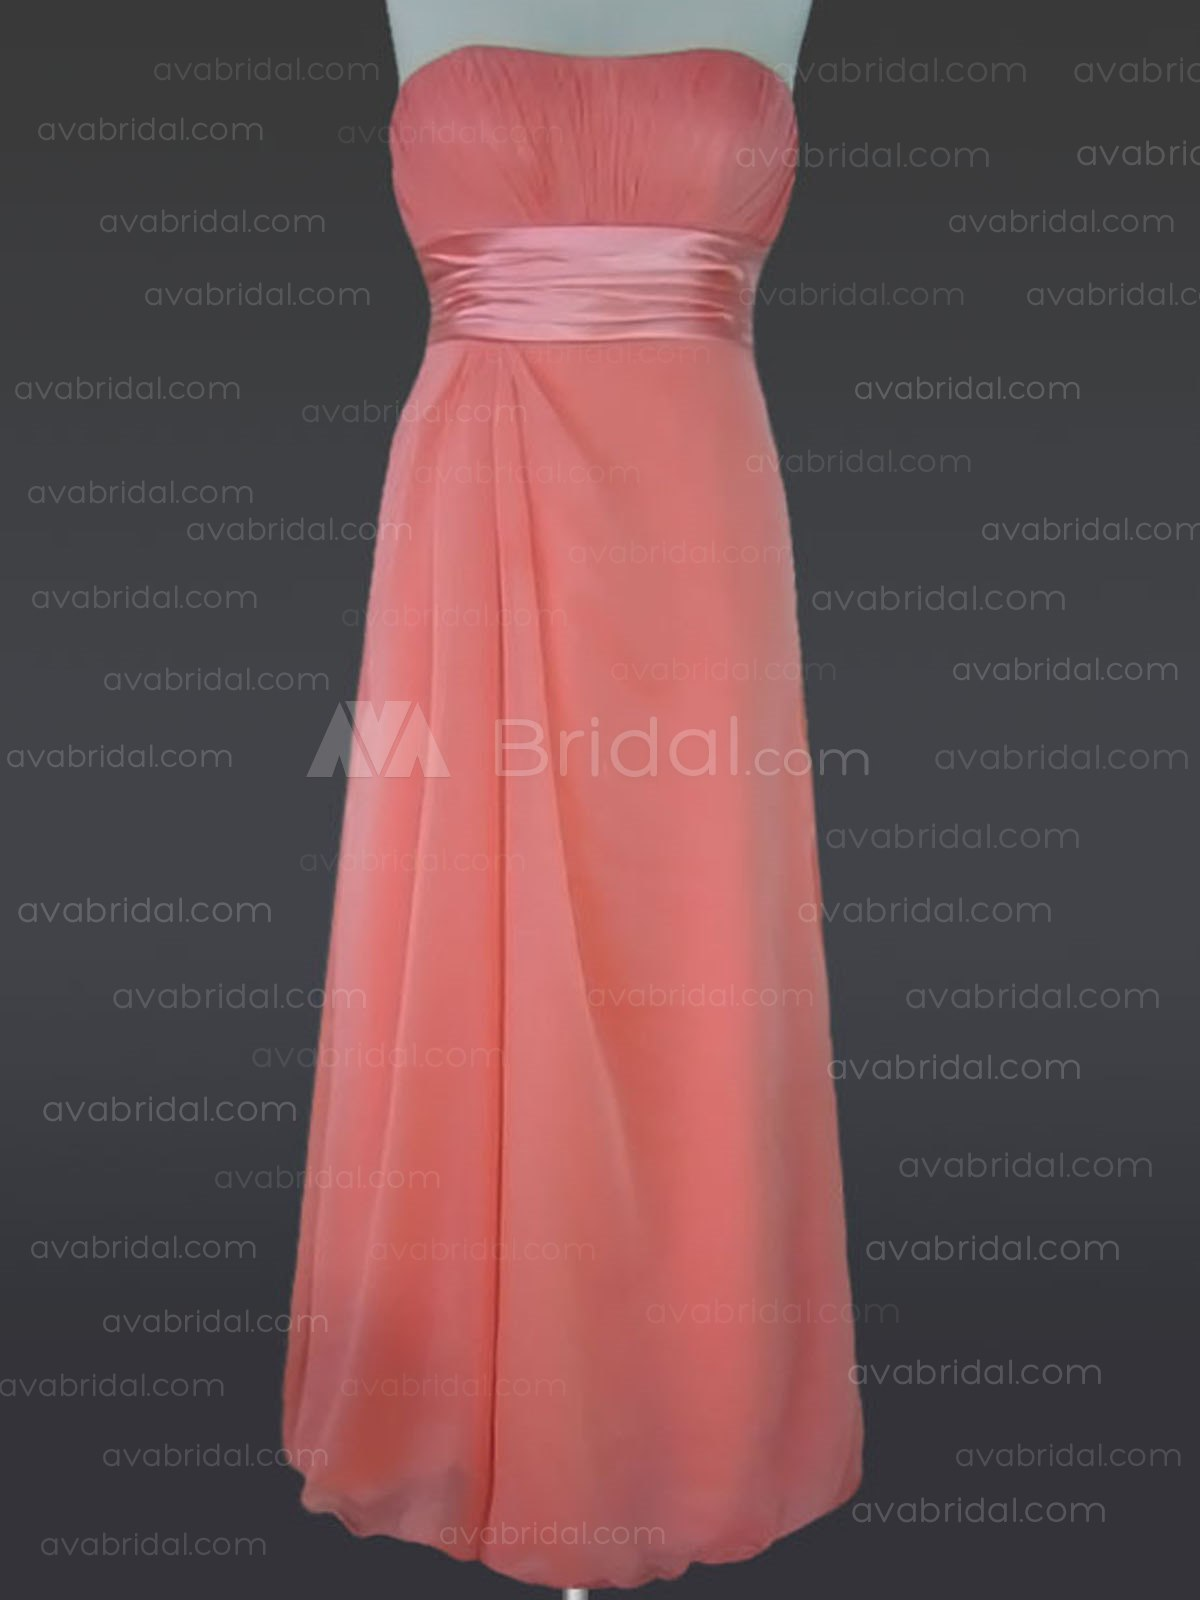 Slim Line Strapless Floor Length Chiffon Bridesmaid Dress B383 - Front